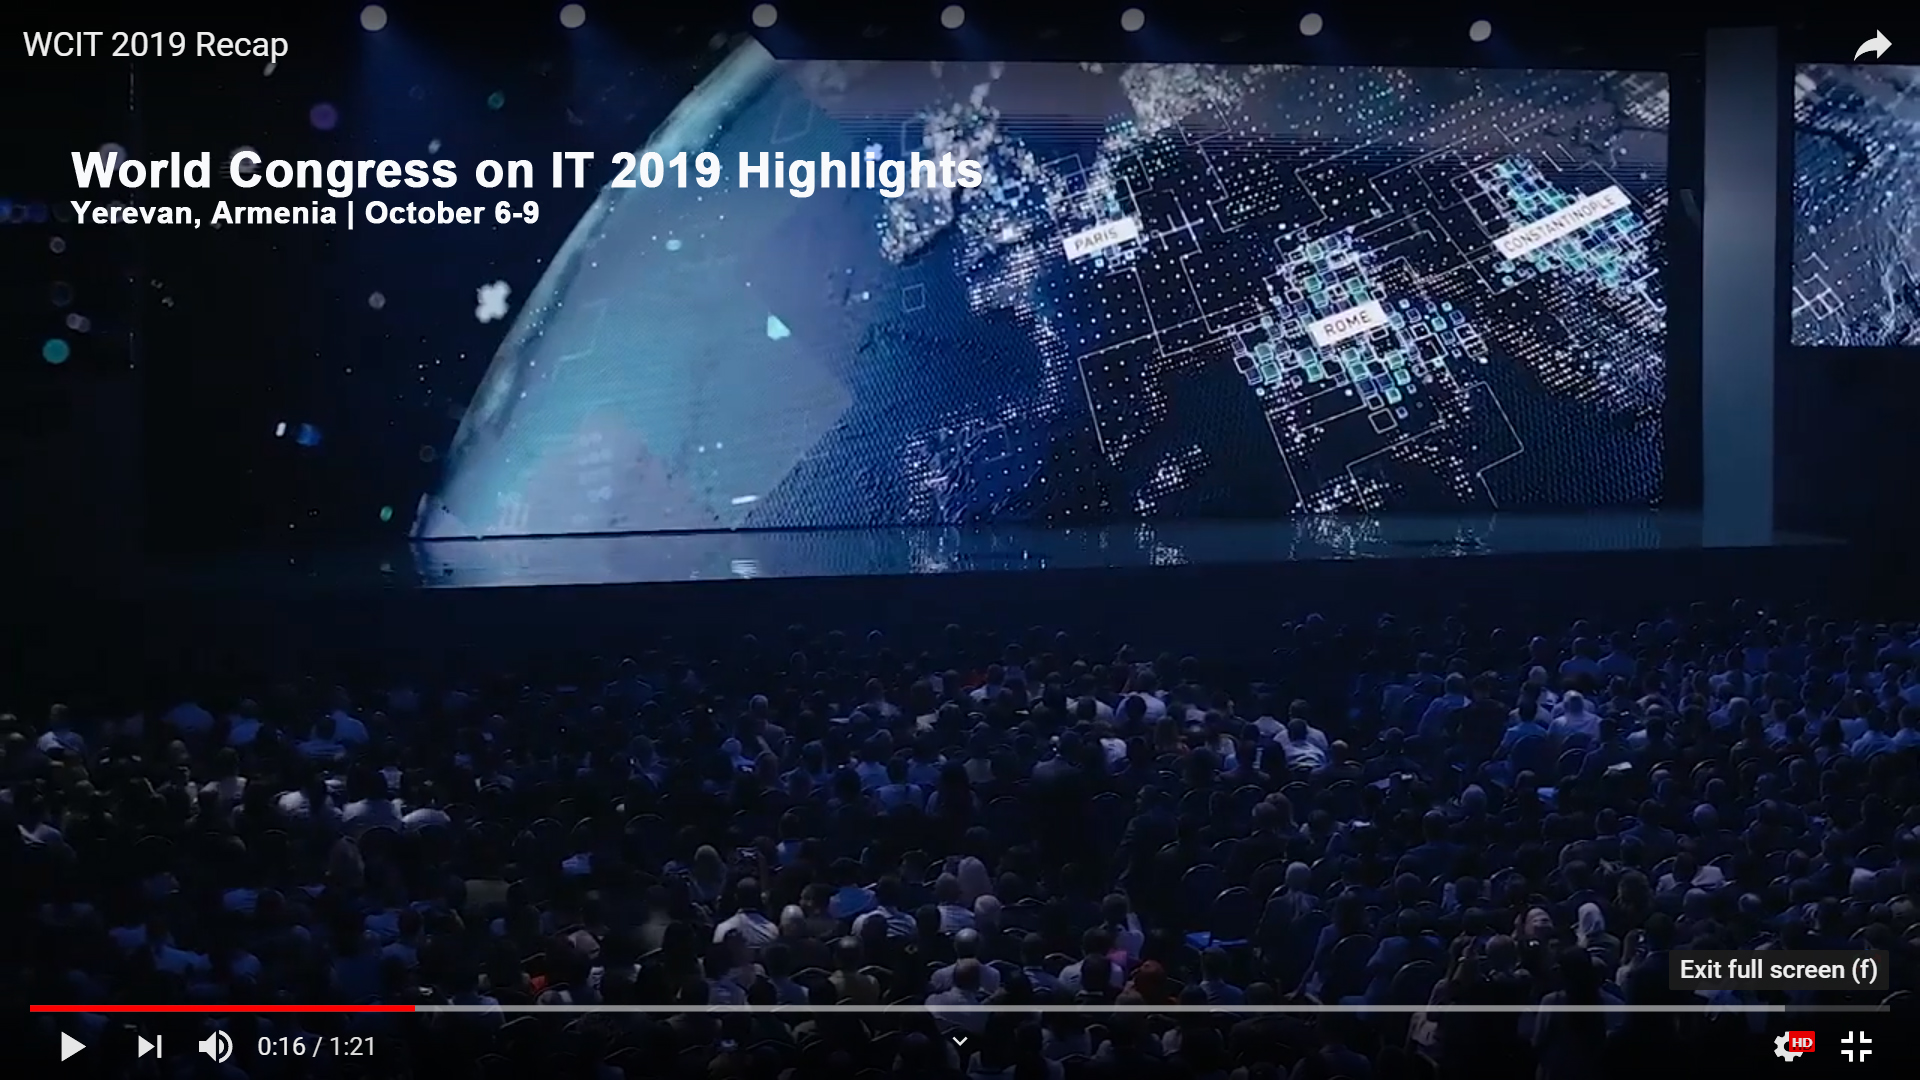 WCIT 2019 Highlight Recap